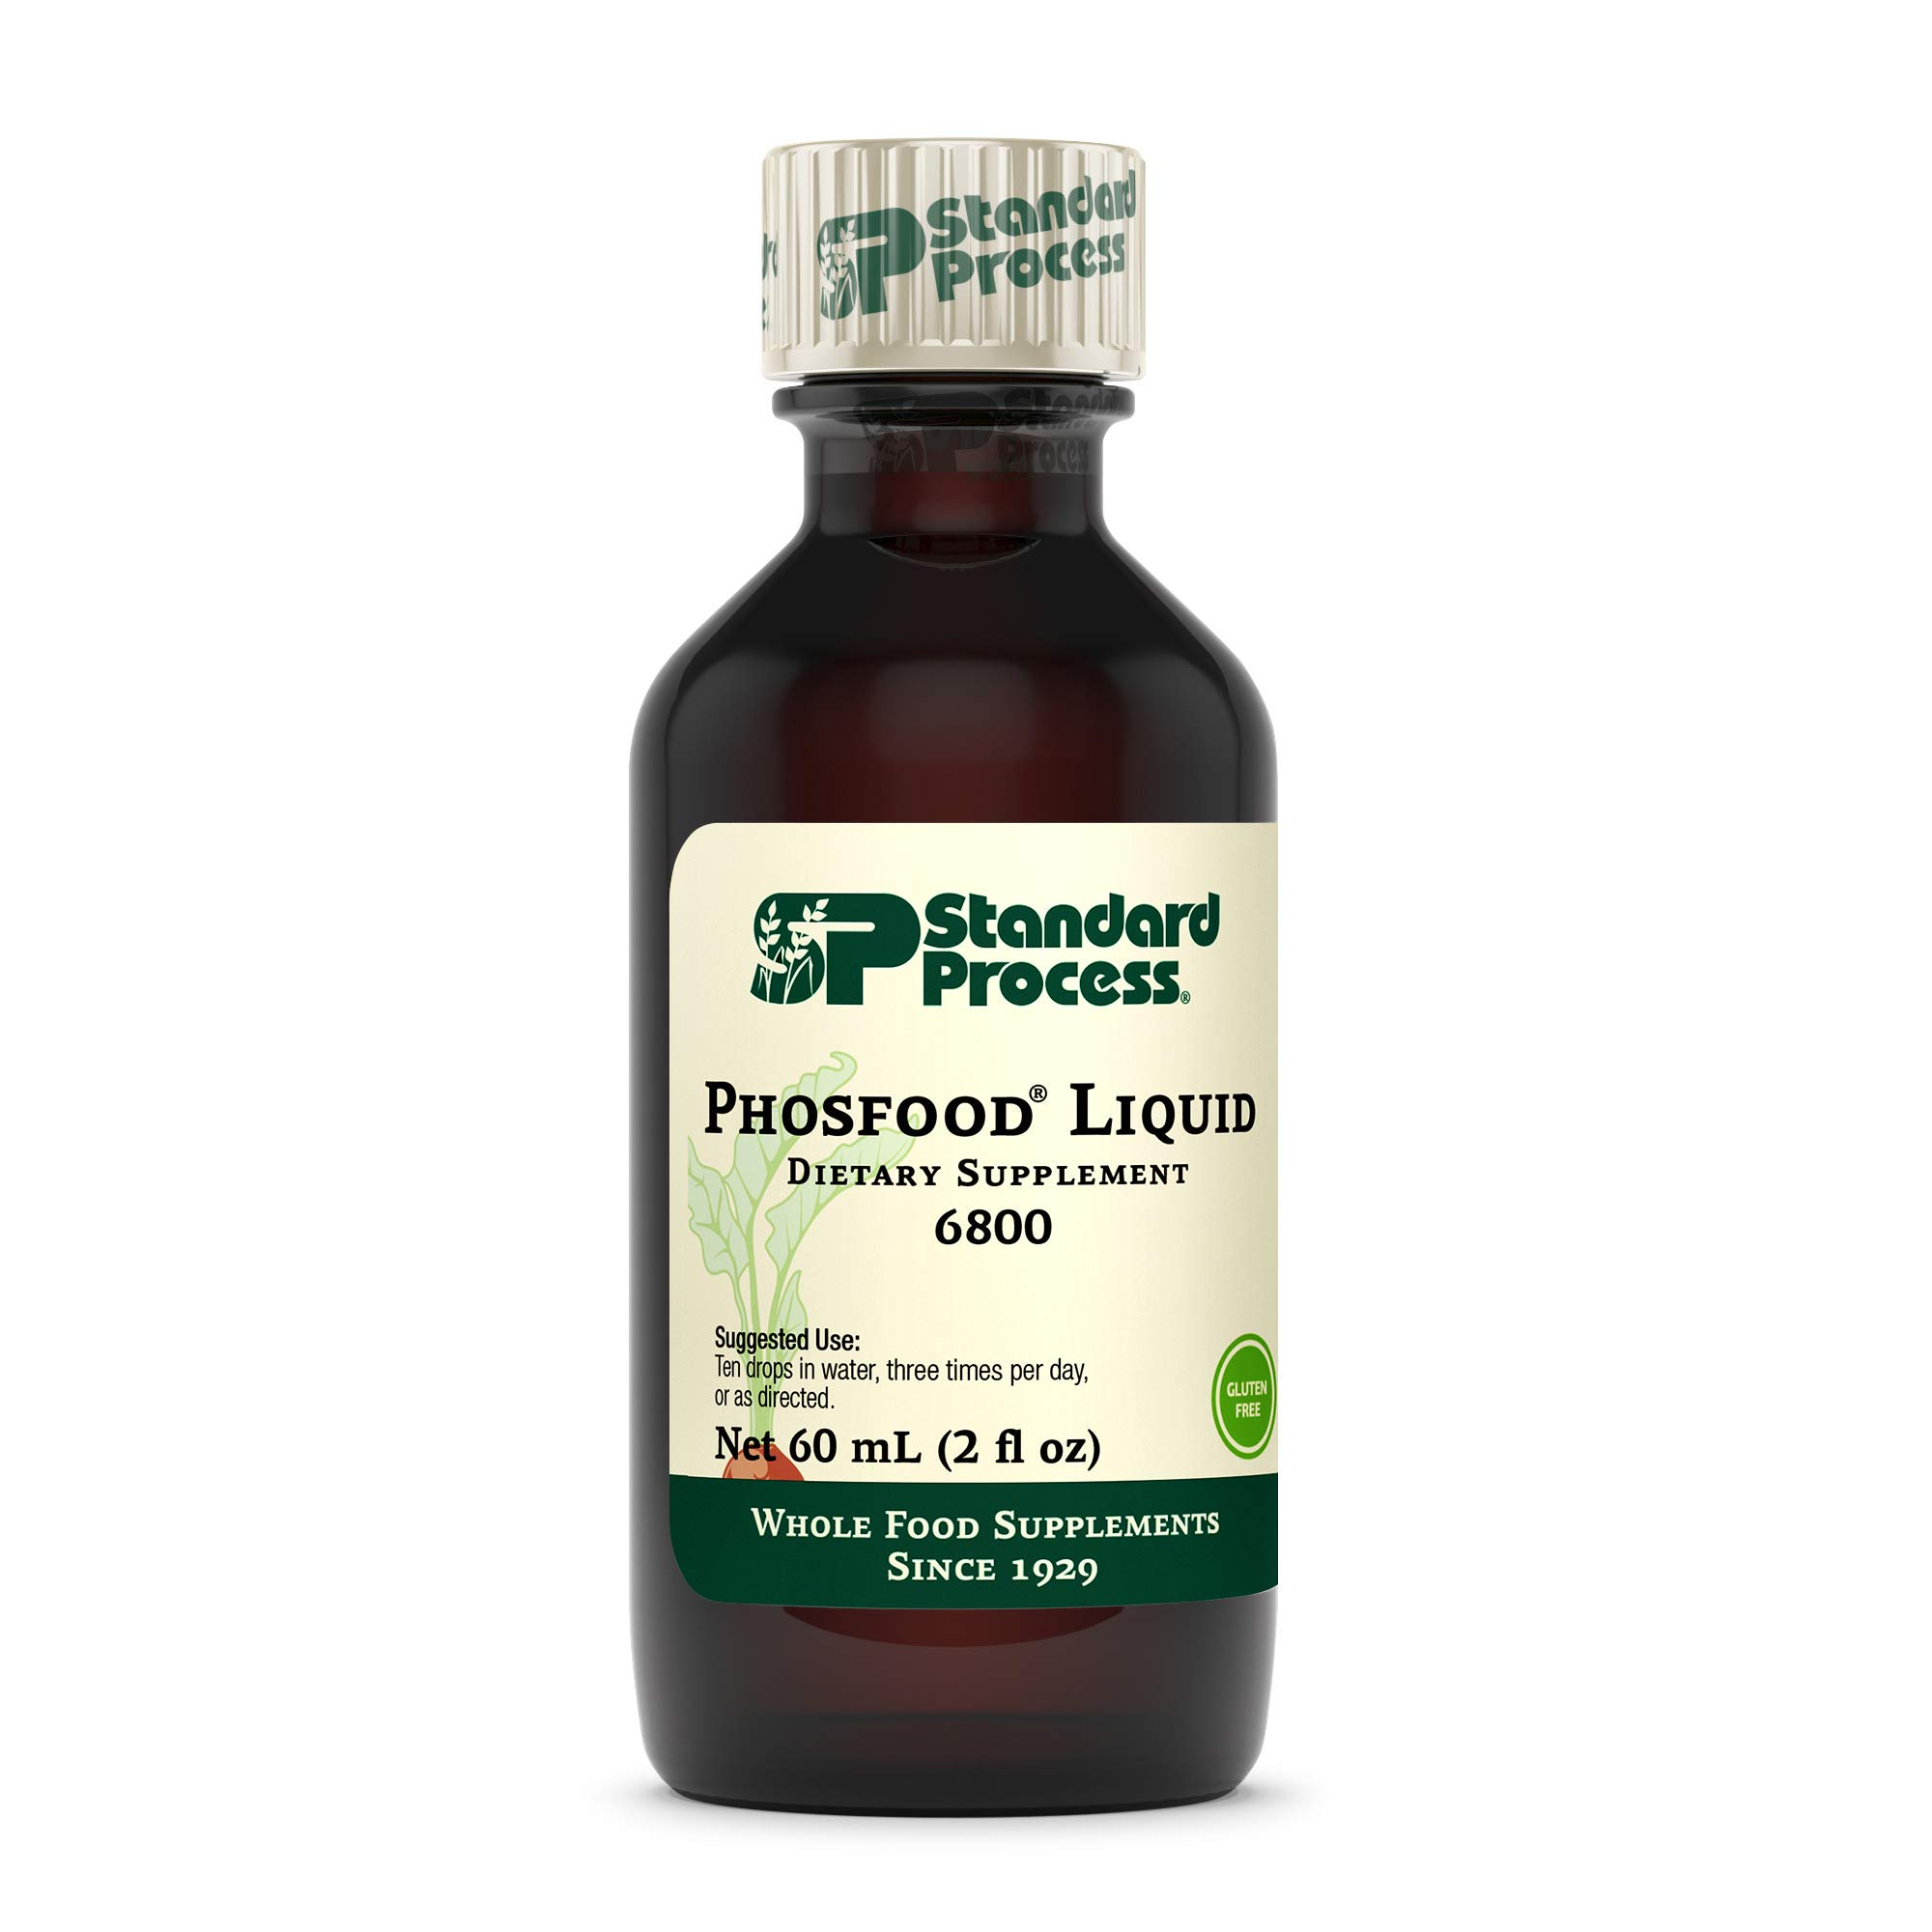 Standard Process Phosfood Liquid - Whole Food Bone Health and Bone Support, Phosphorus Supplements with Inositol and Riboflavin - 2 fl. oz.